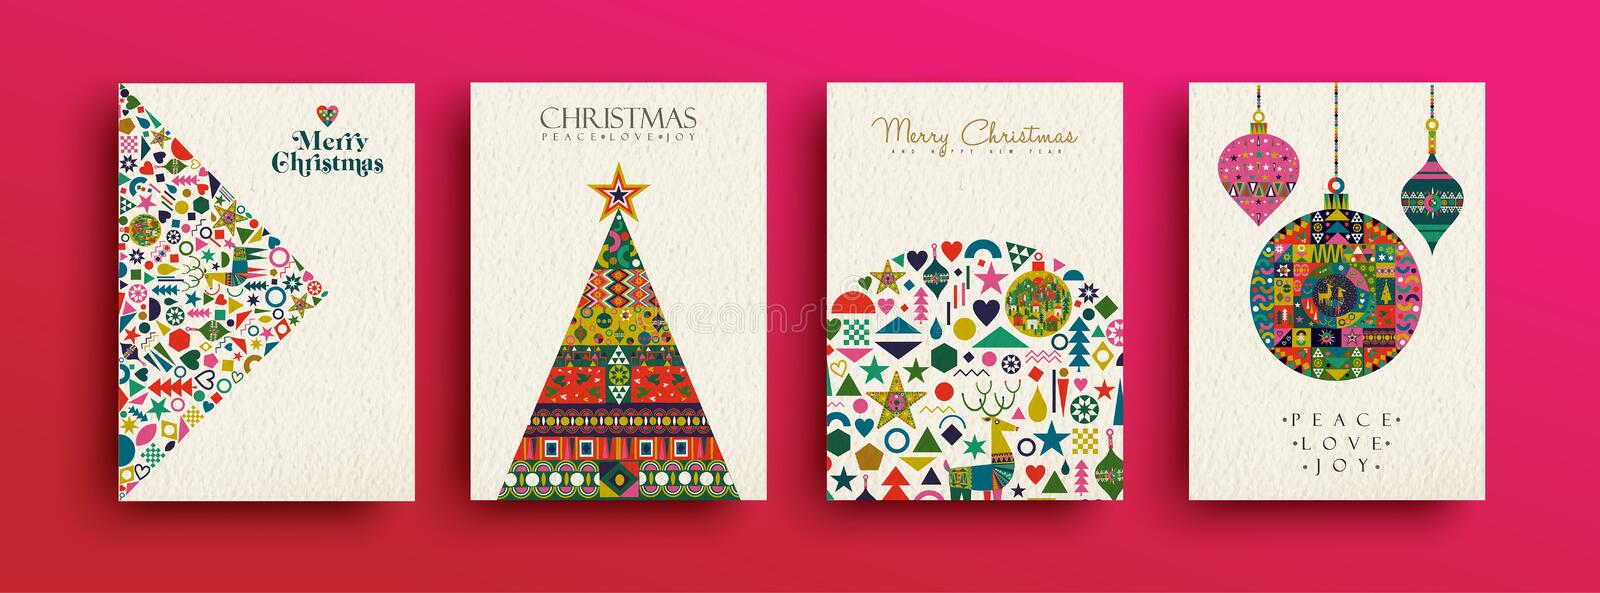 Merry Christmas retro folk art card collection stock illustration